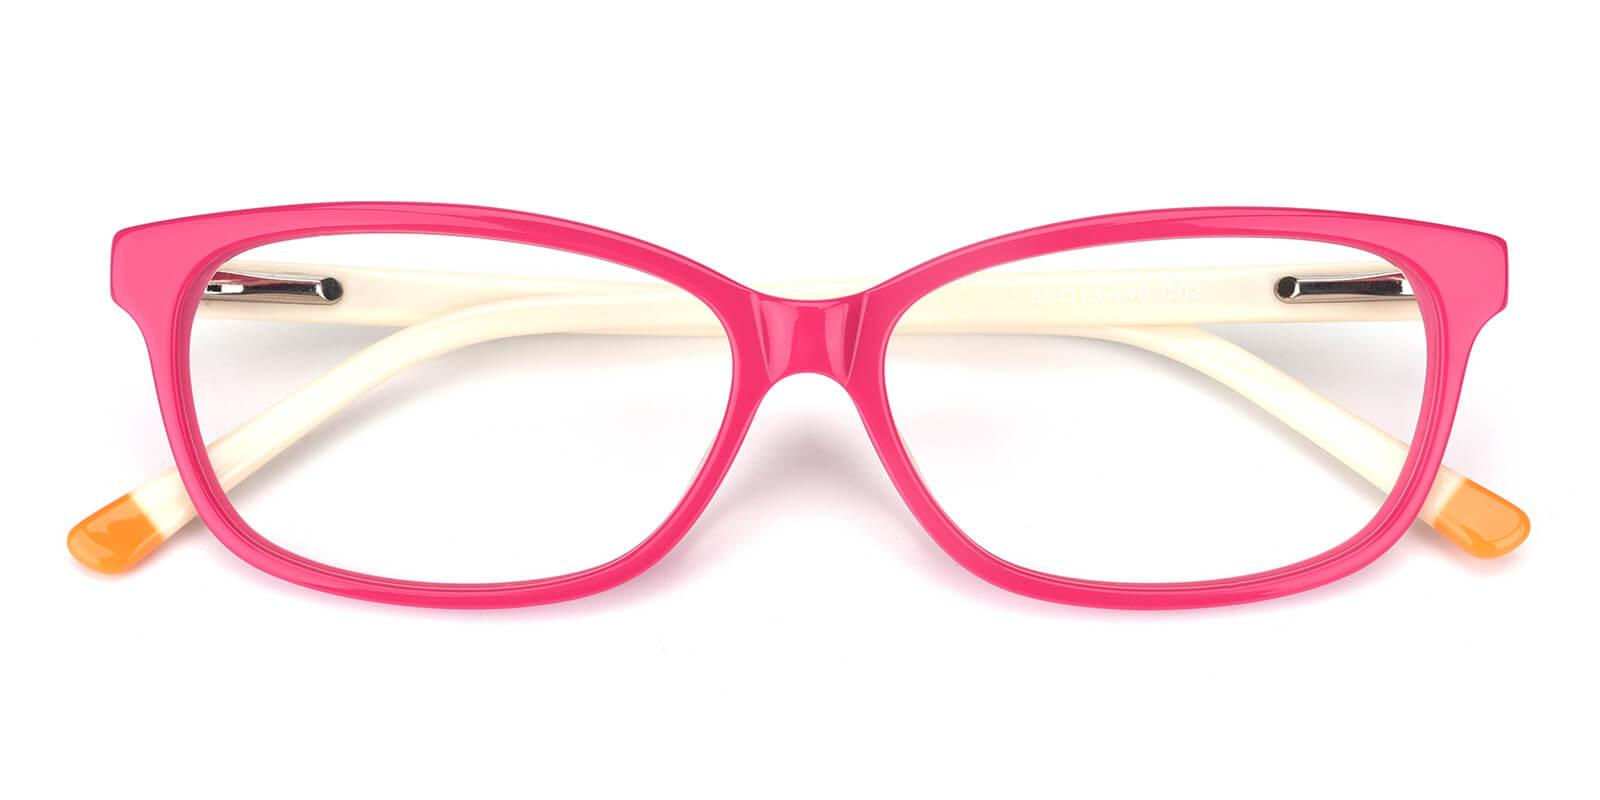 Zion-Pink-Cat-Acetate-Eyeglasses-detail